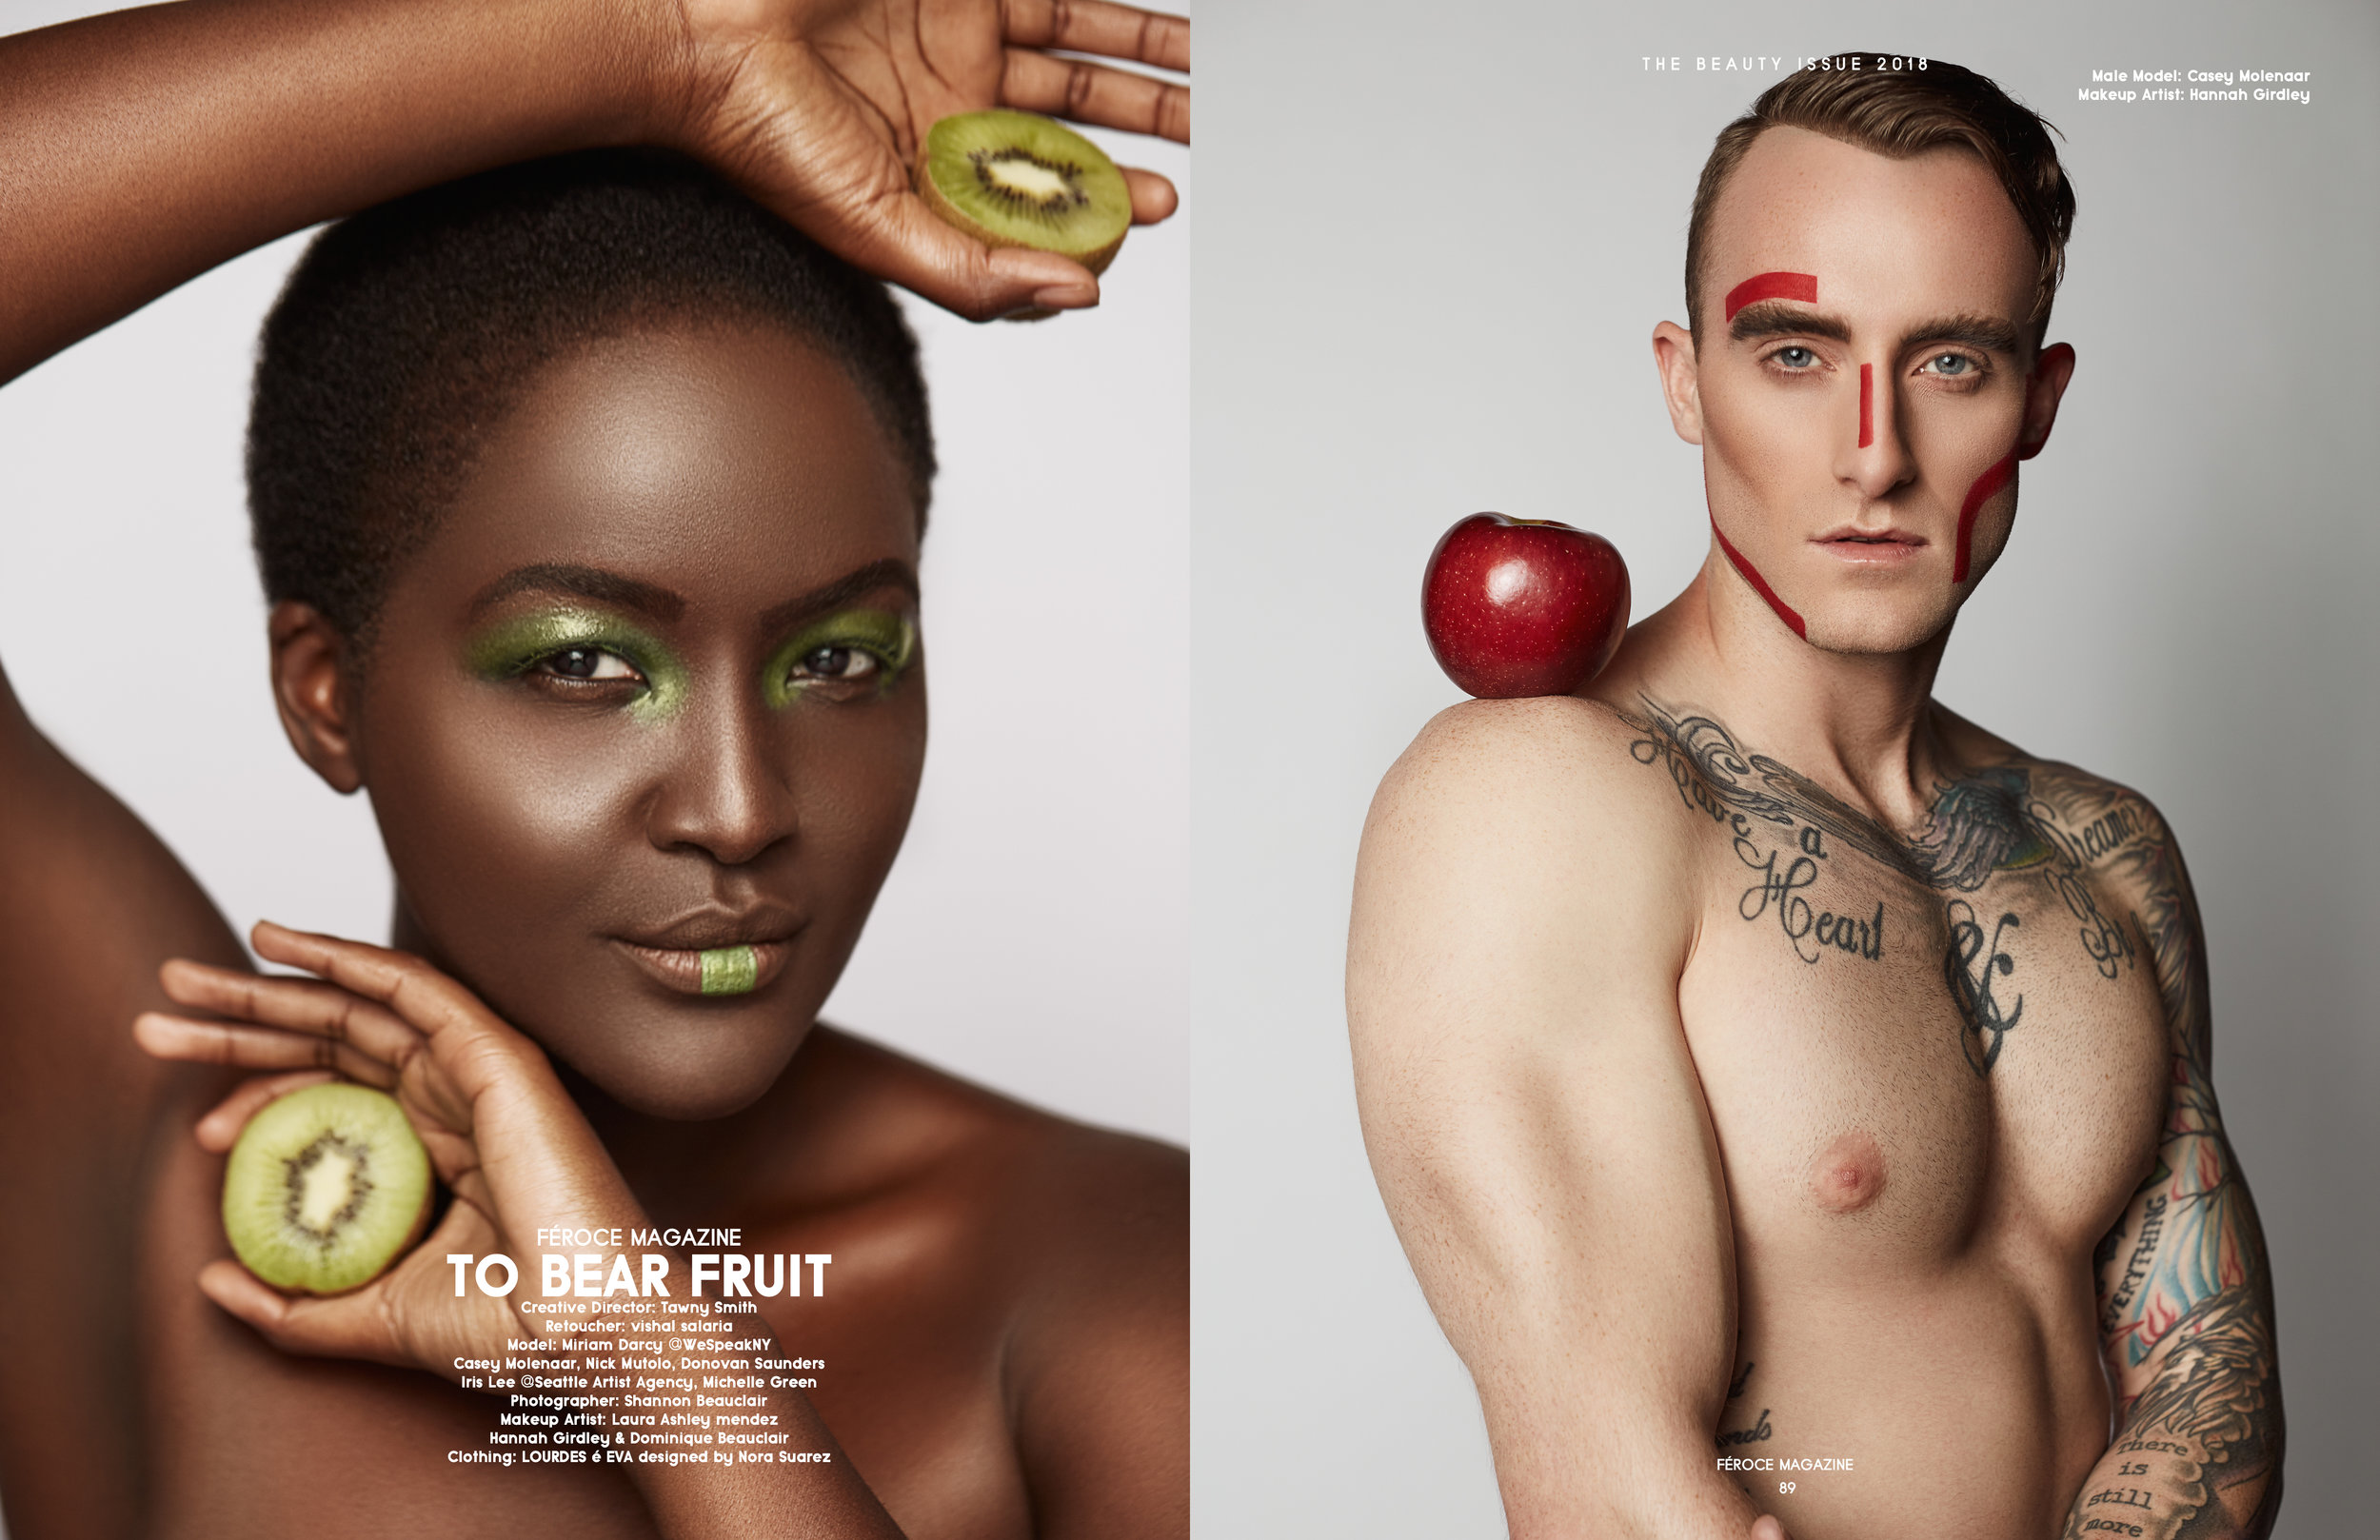 THE BEAUTY ISSUE 201845.jpg